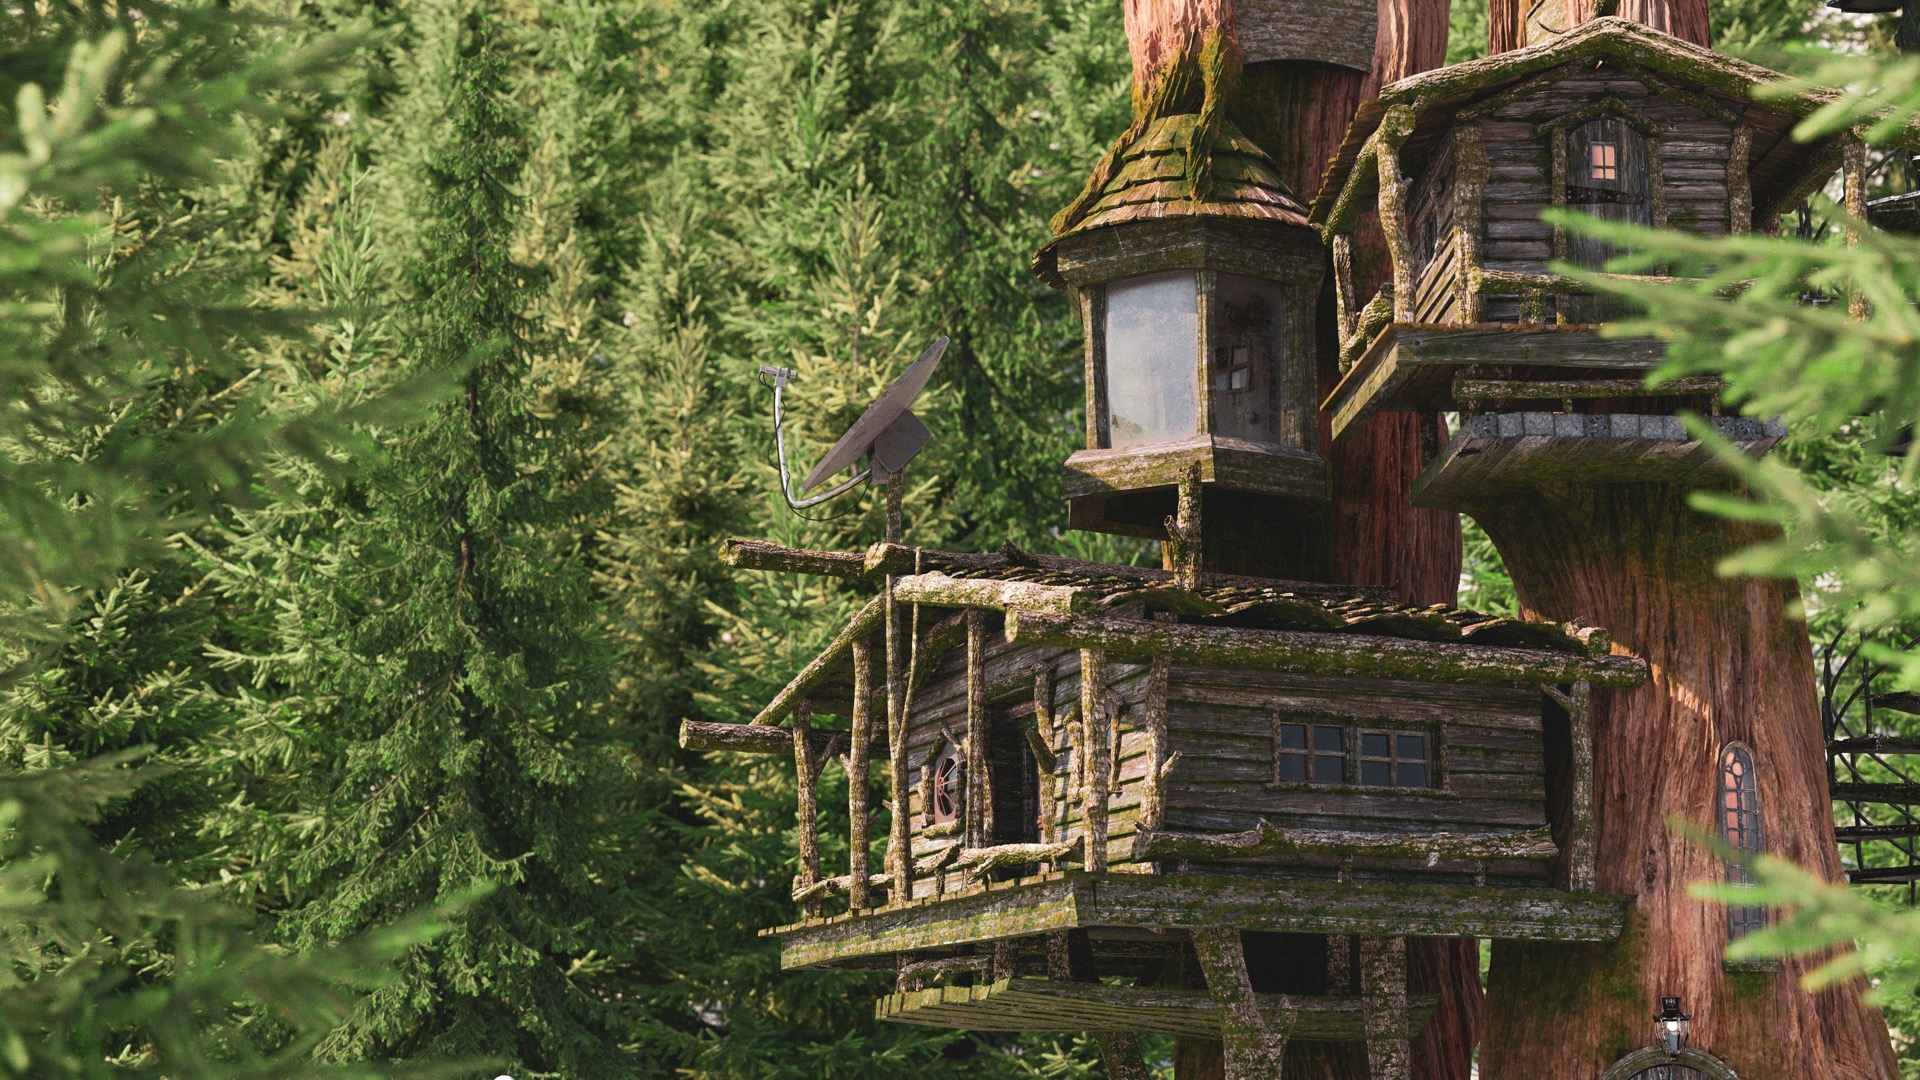 Figure 12: In-progress test render with initial fully shaded treehouse, along with geoemtric modifications. Click for 4K version.